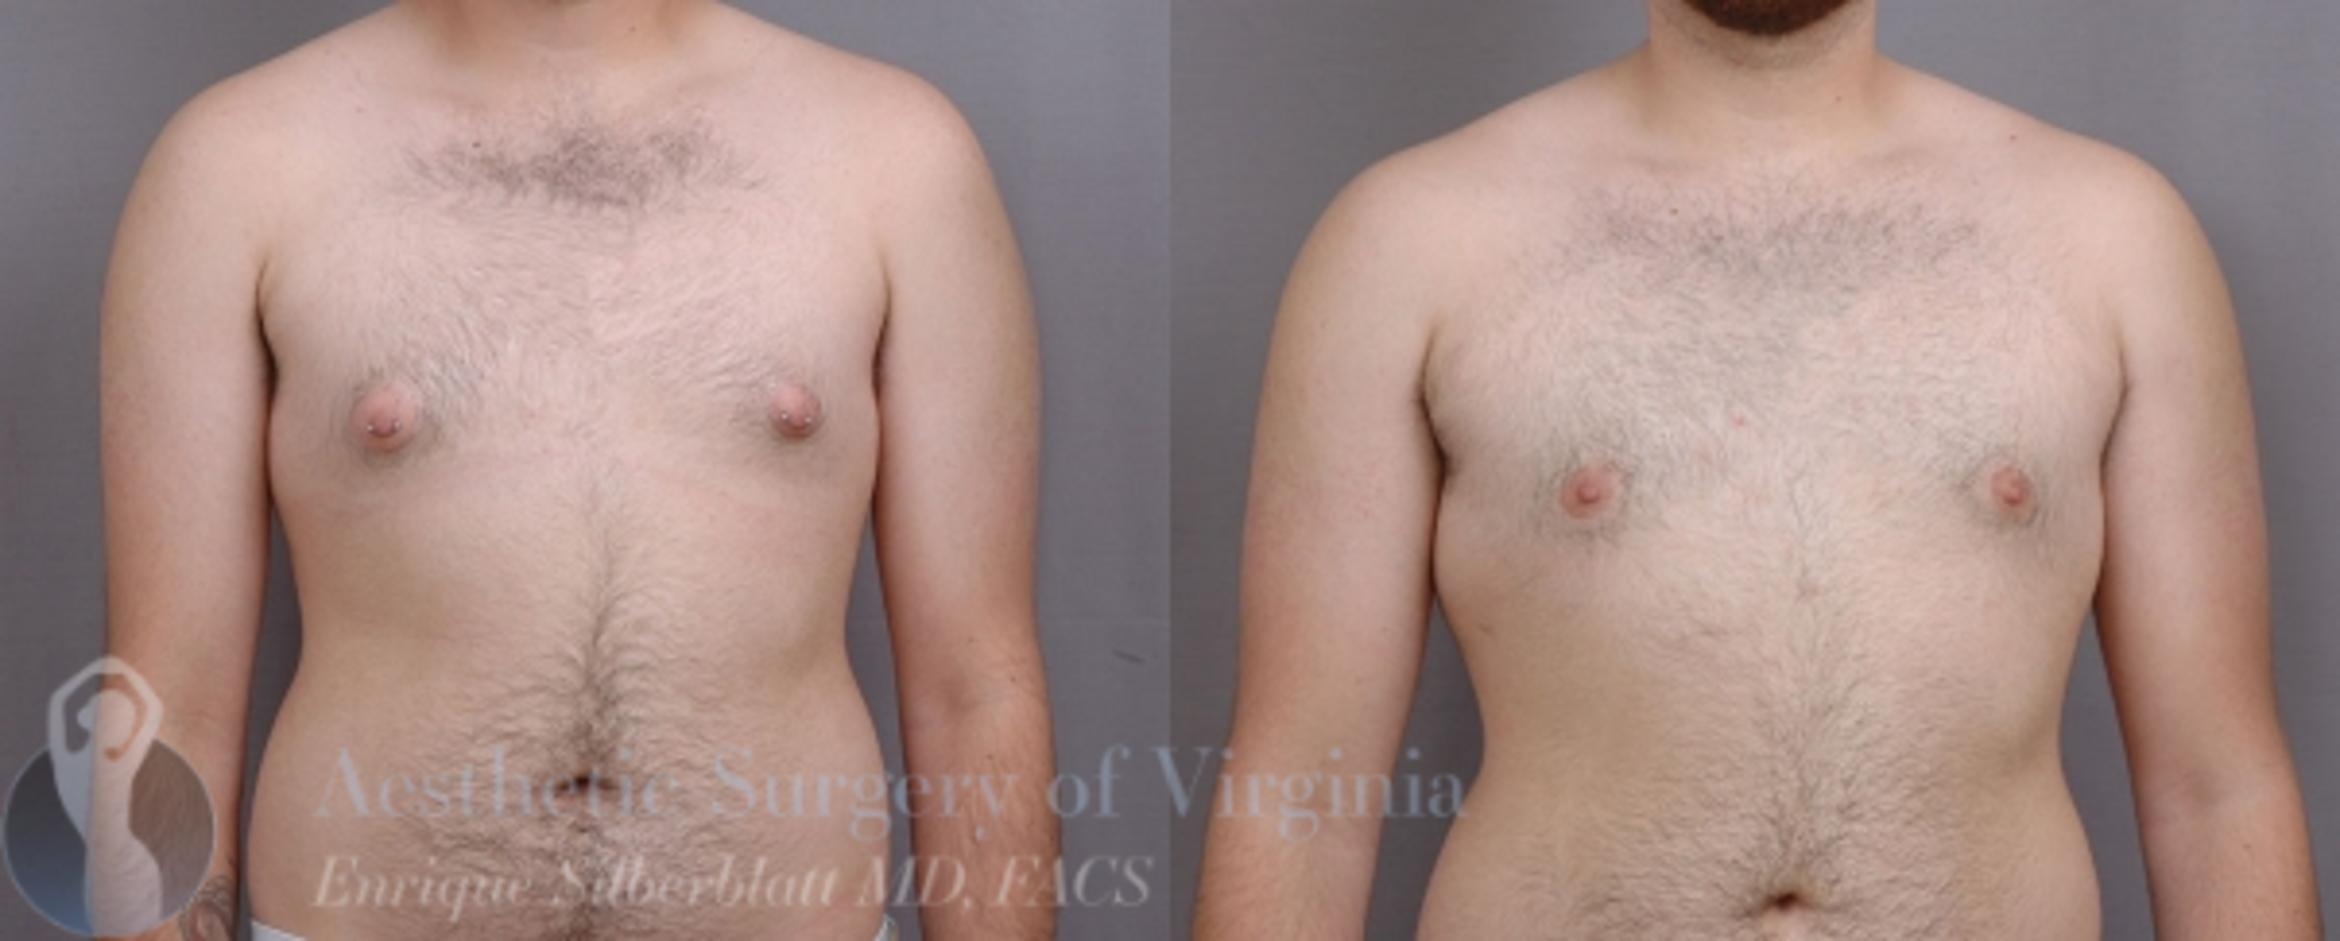 Female to Male Breast Surgery Case 58 Before & After View #1 | Roanoke, VA | Aesthetic Surgery of Virginia: Enrique Silberblatt, MD